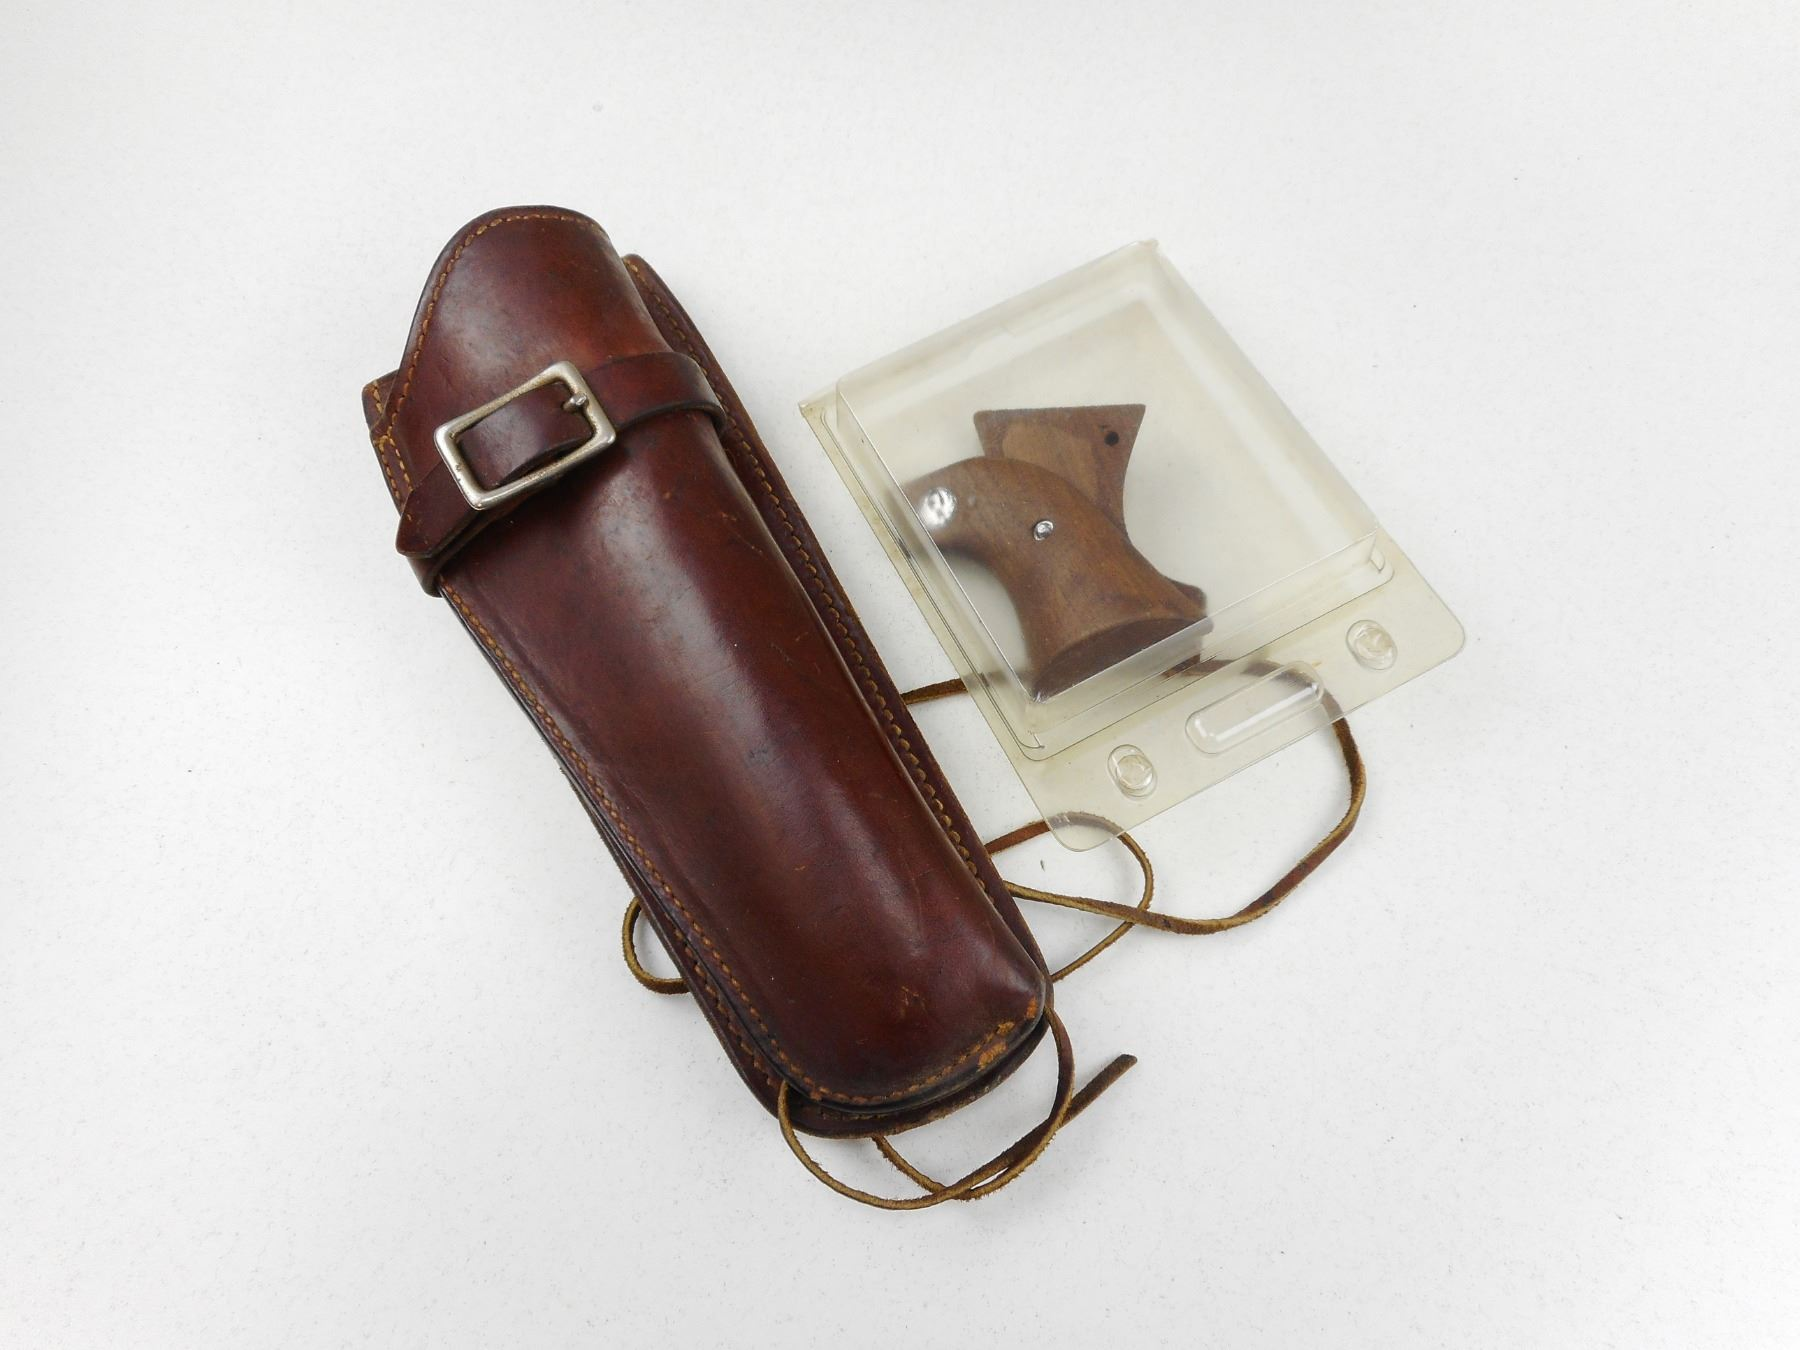 LEATHER HOLSTER & WOODEN RUGER GRIPS